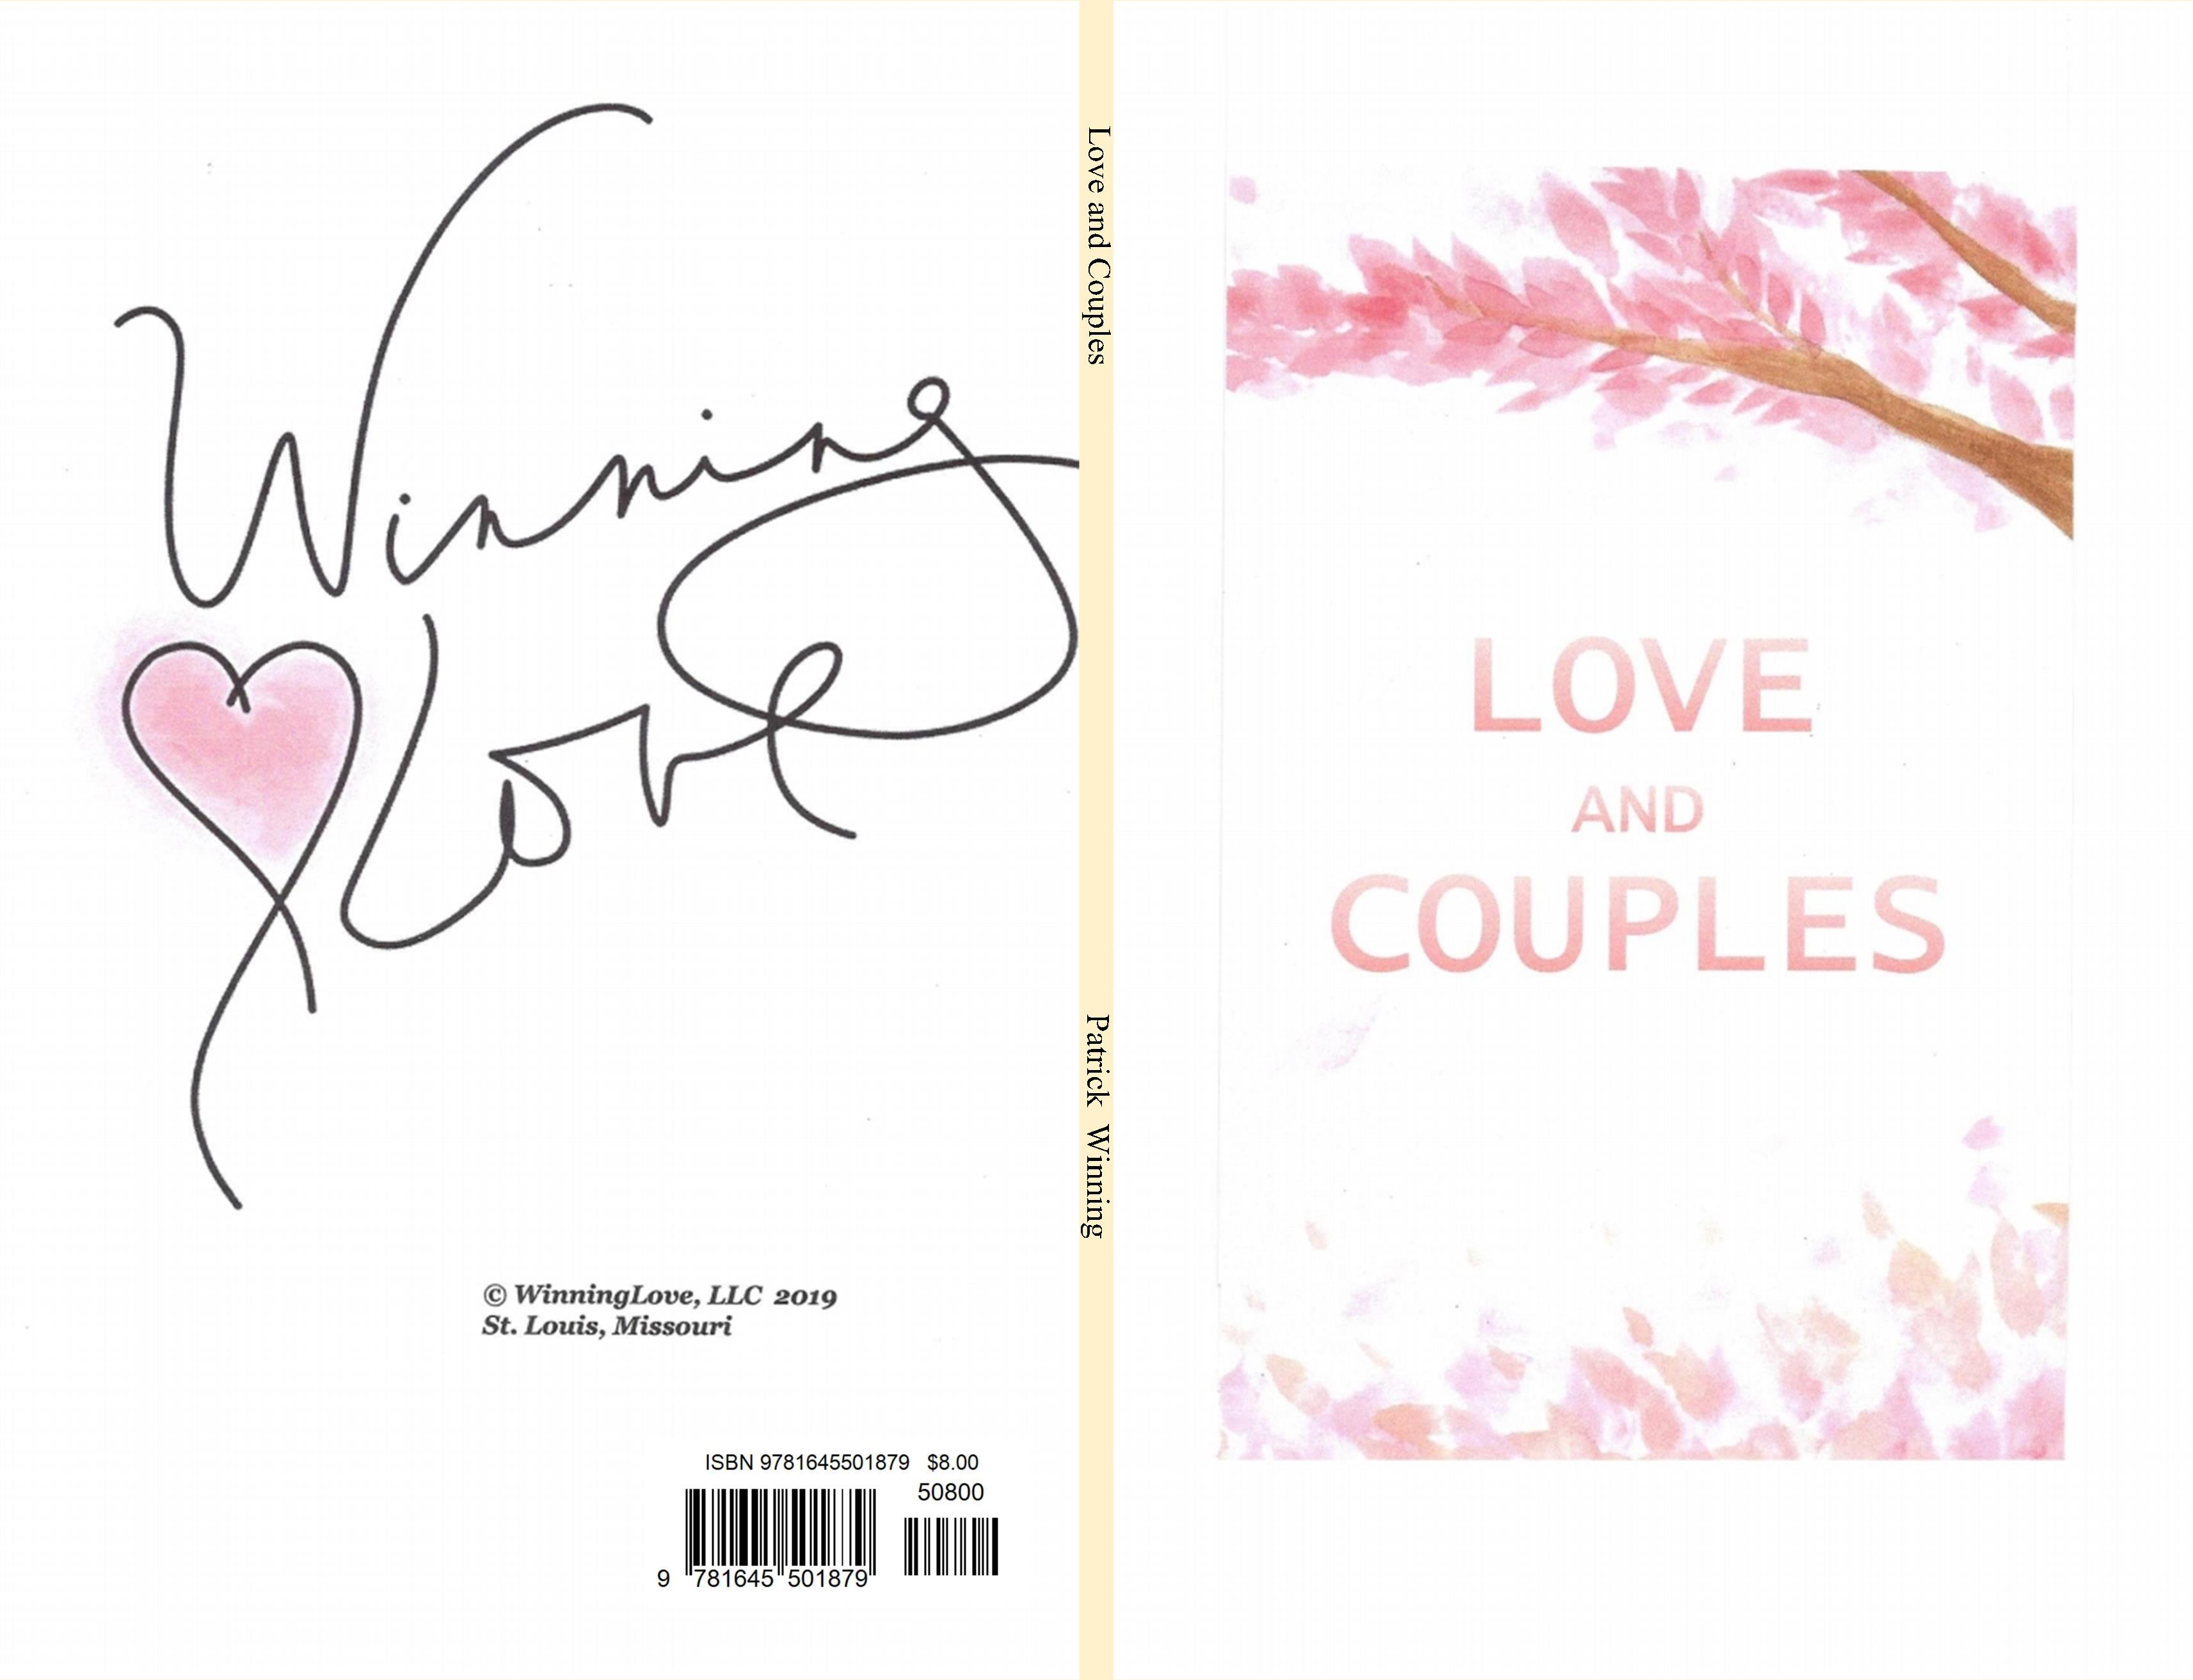 Love and Couples cover image